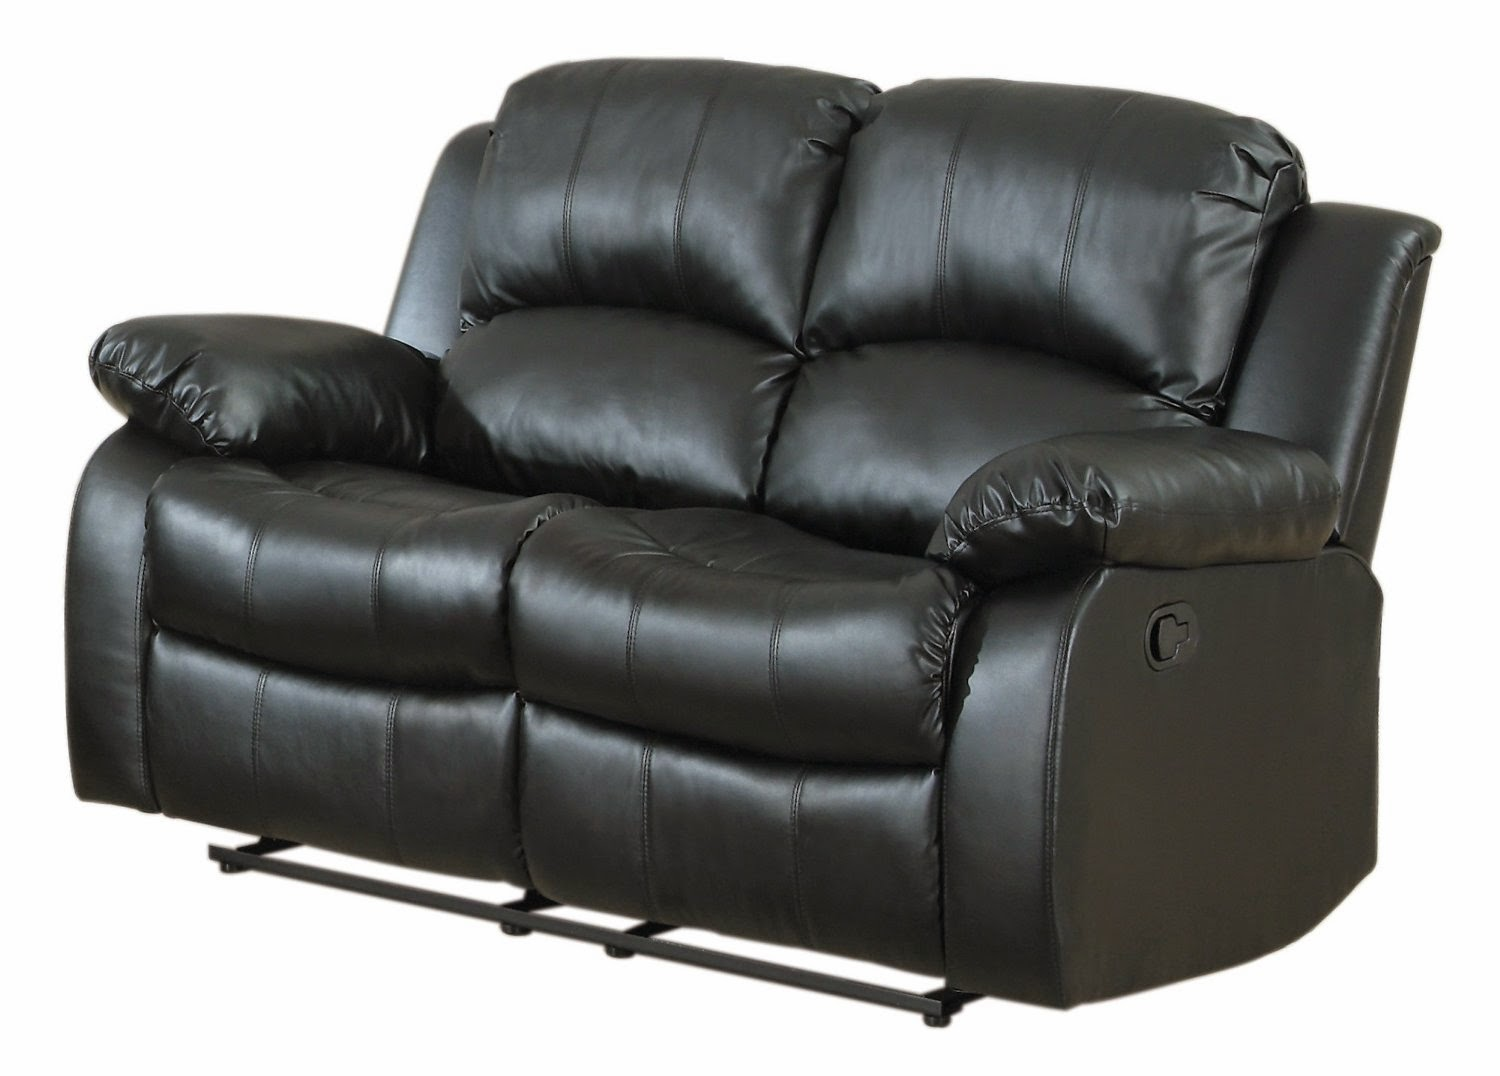 Cheap recliner sofas for sale black leather reclining for Sofa couch for sale